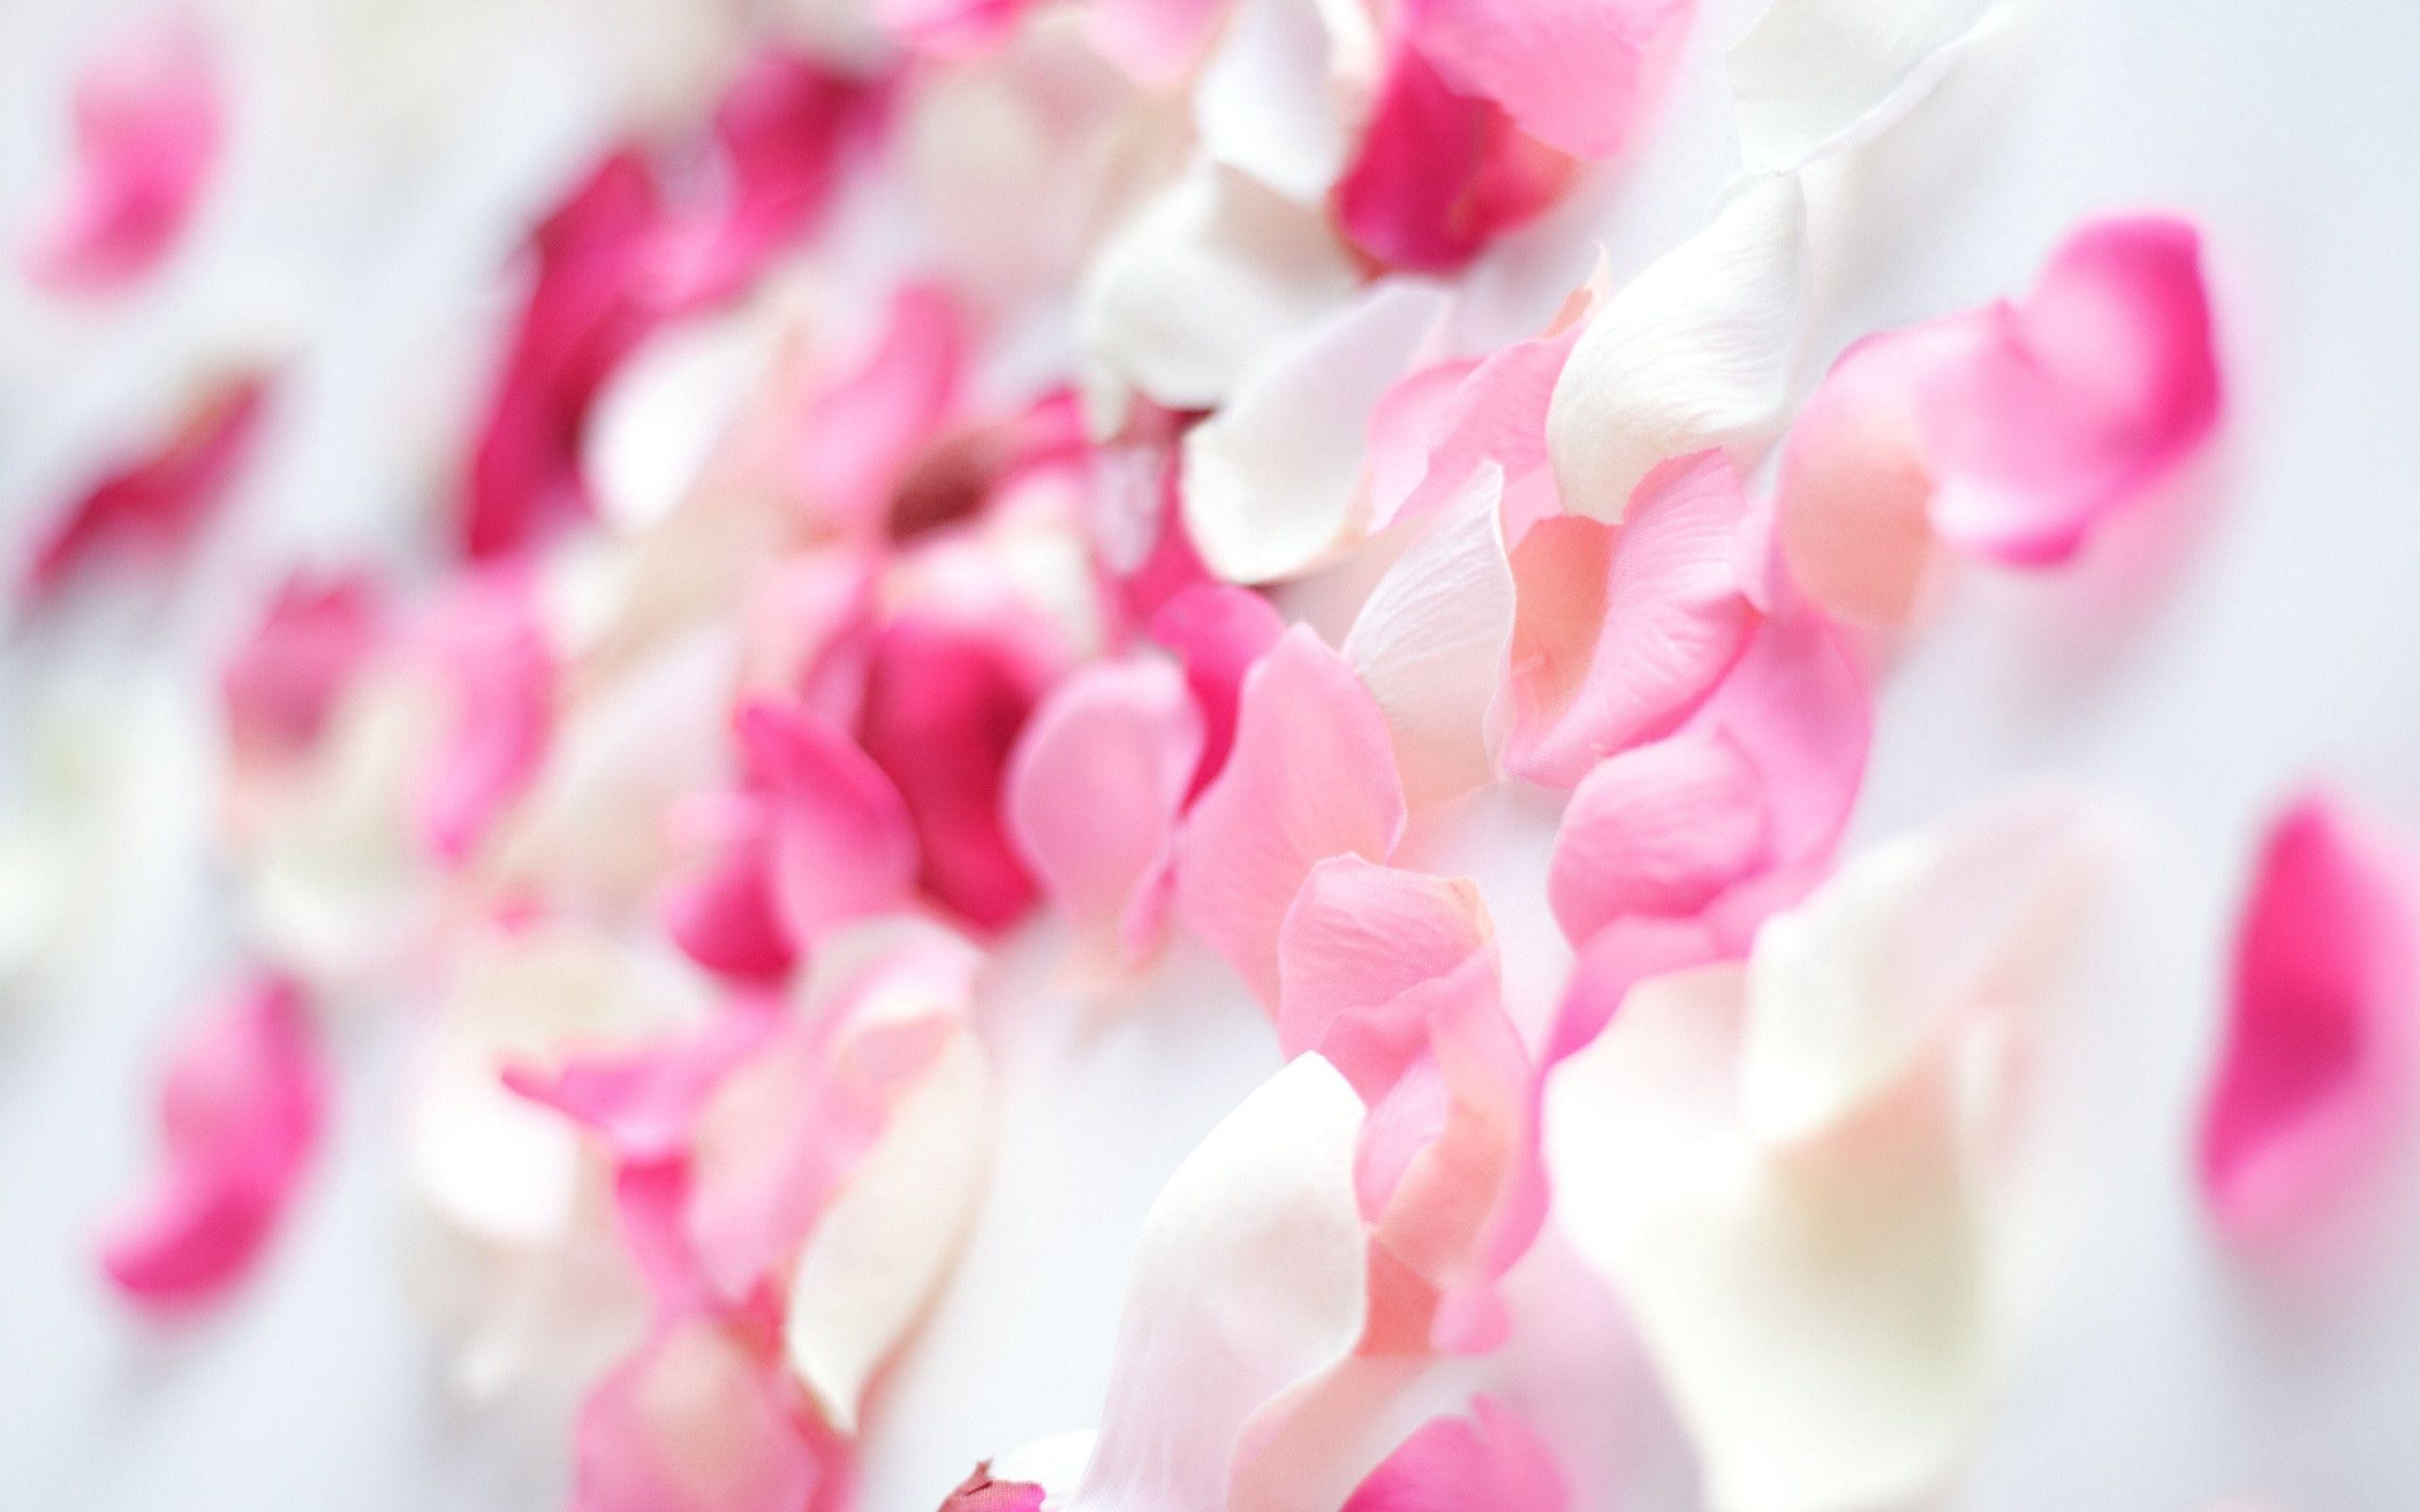 Wallpapers Tagged With PINK   PINK HD Wallpapers   Page 1